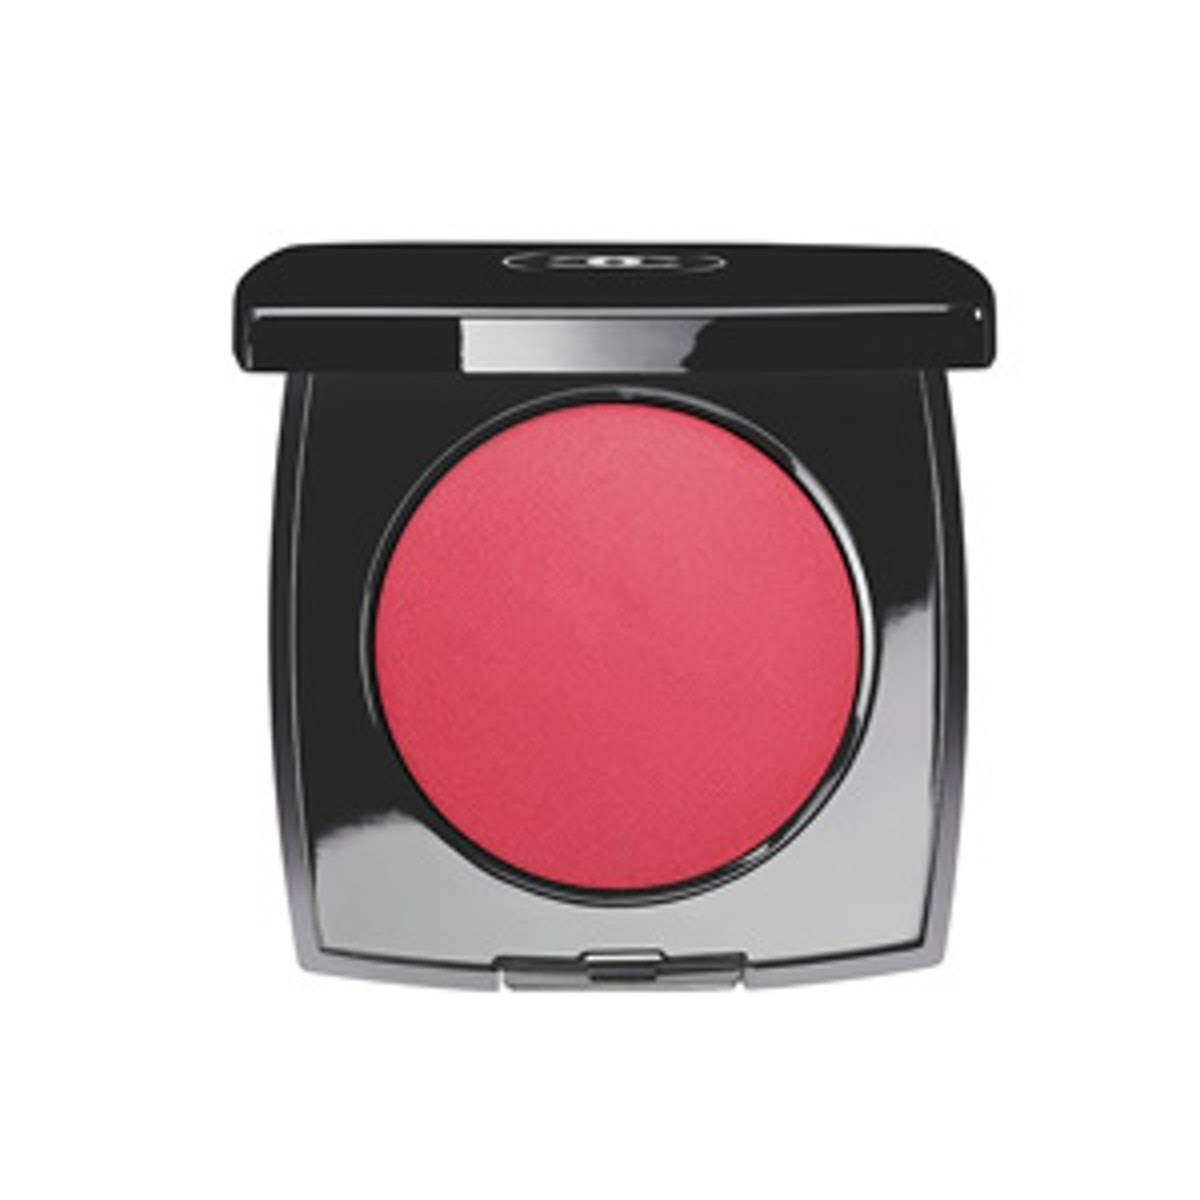 Le Blush Creme de Chanel in Chamade